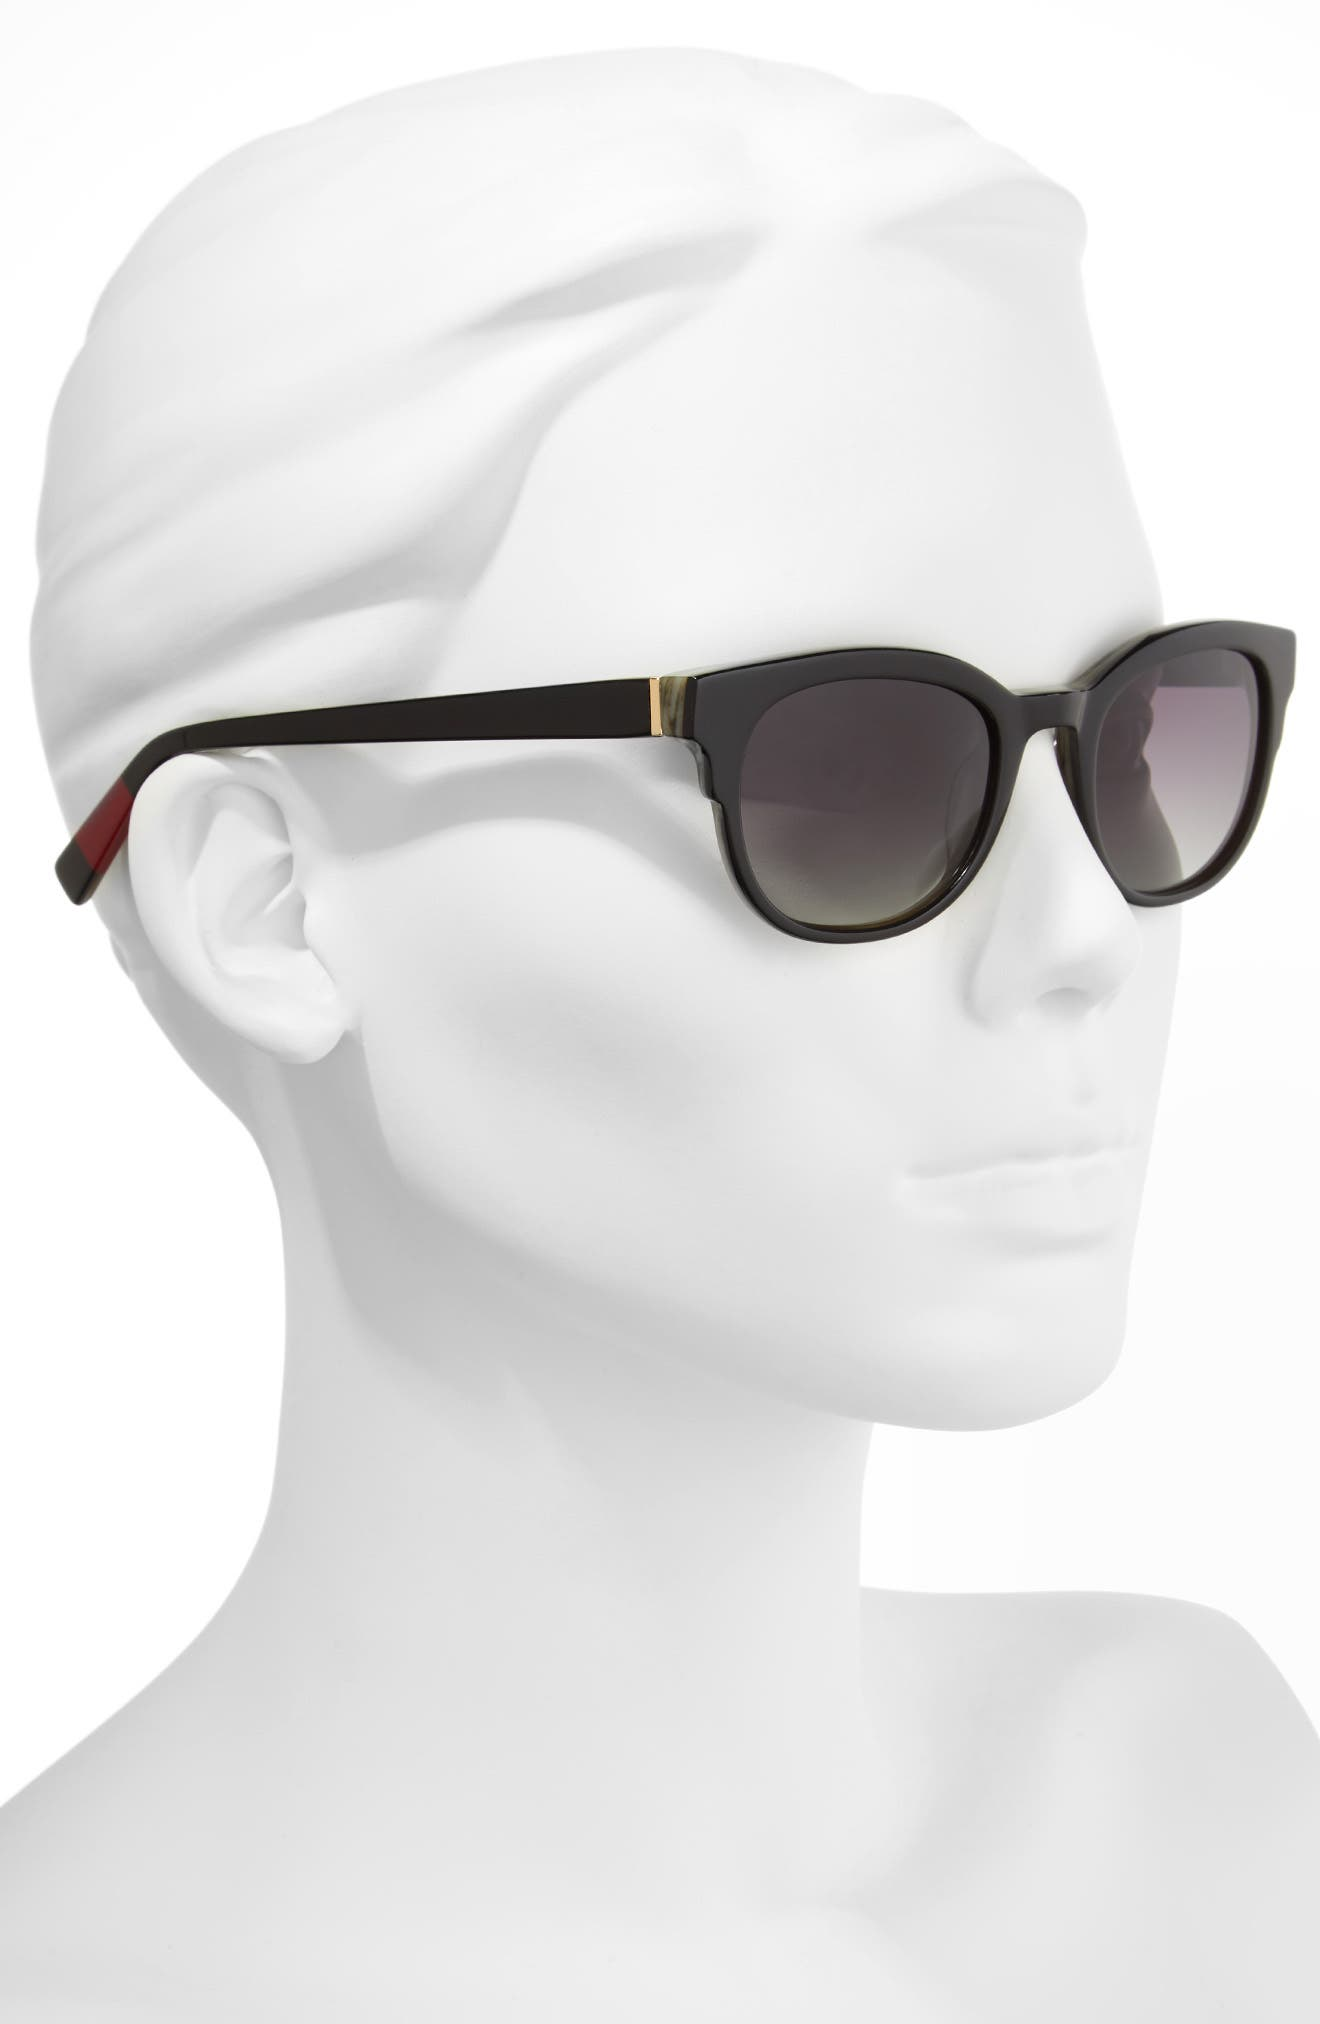 48mm Gradient Sunglasses,                             Alternate thumbnail 2, color,                             BLACK